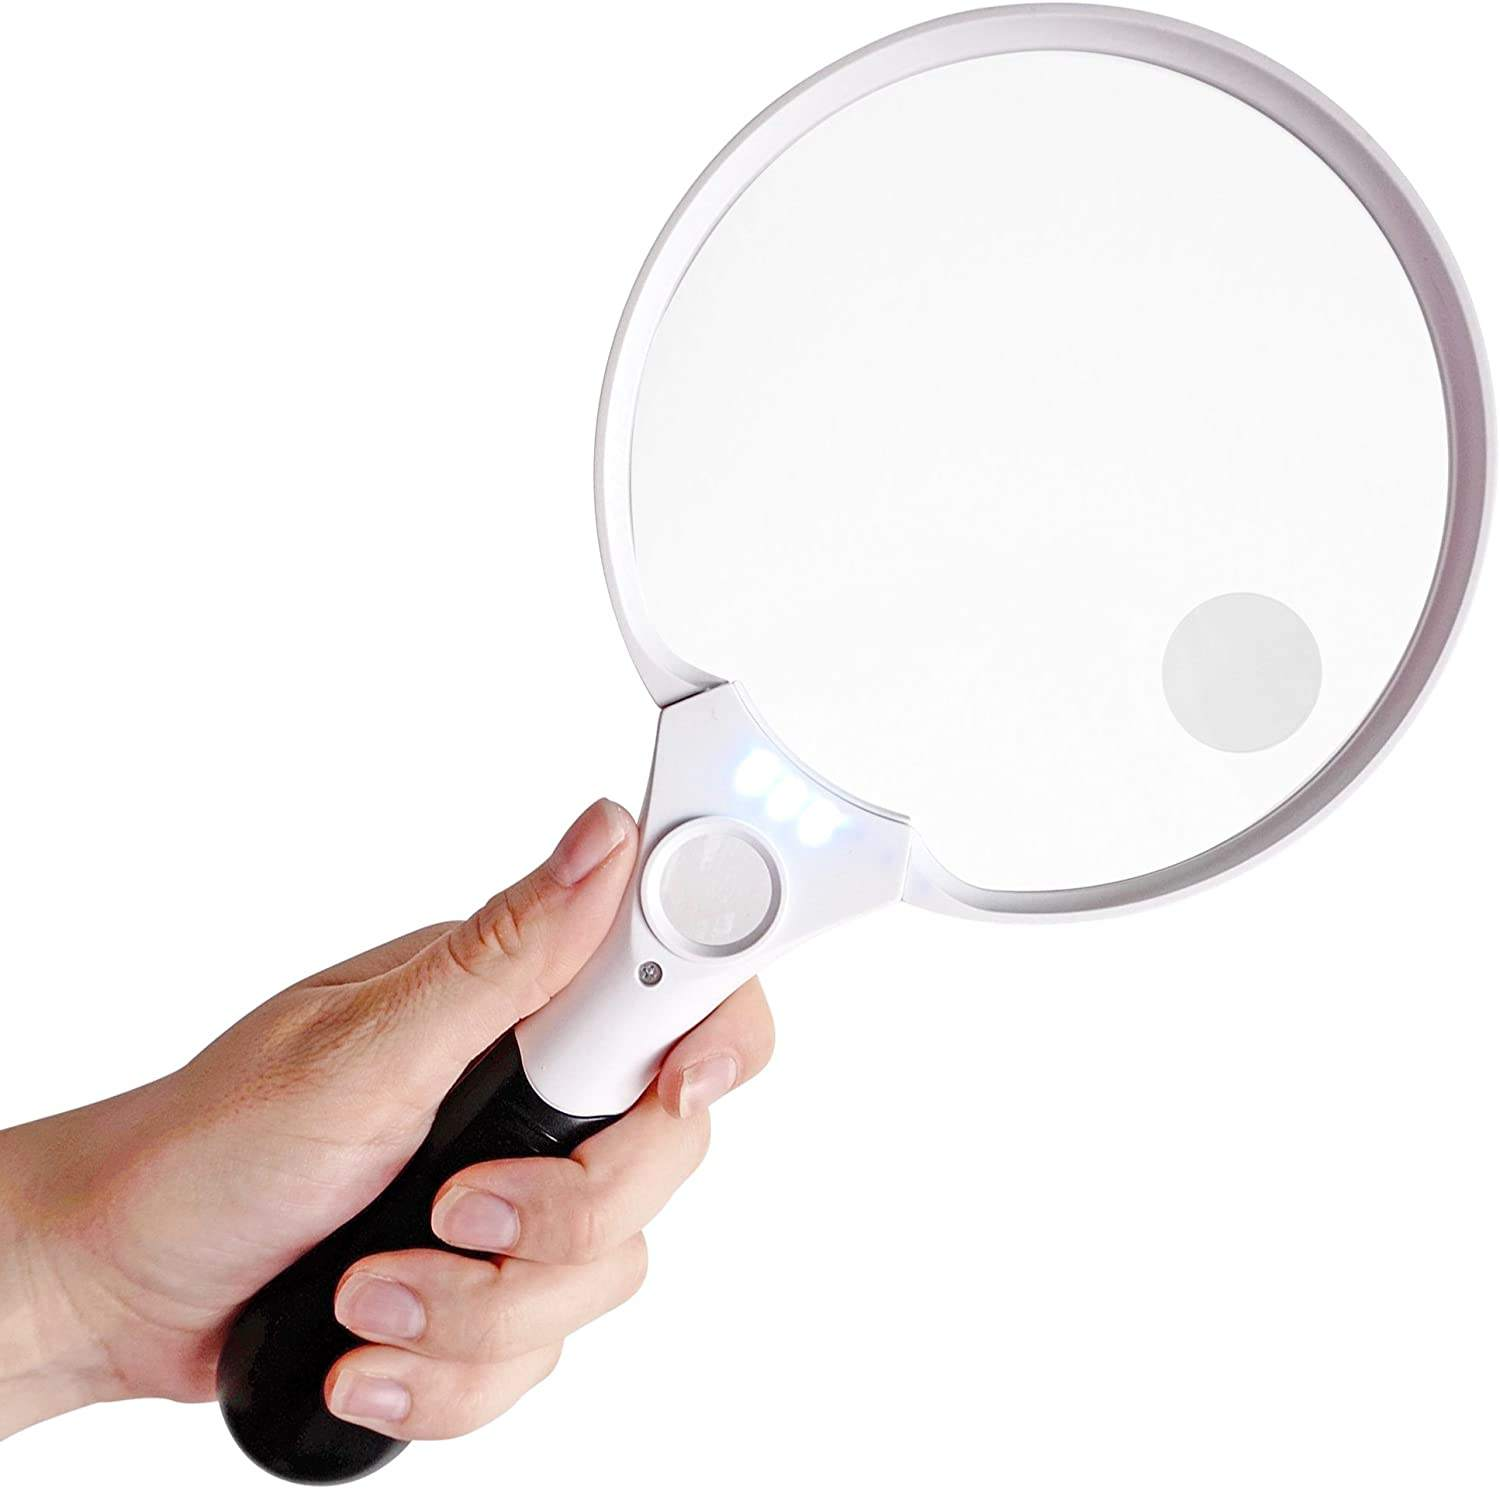 5.5 inch Extra Large LED Handheld Magnifying Glass with Light - 2X 4X 25X Lens - Jumbo Size Illuminated Reading Magnifier